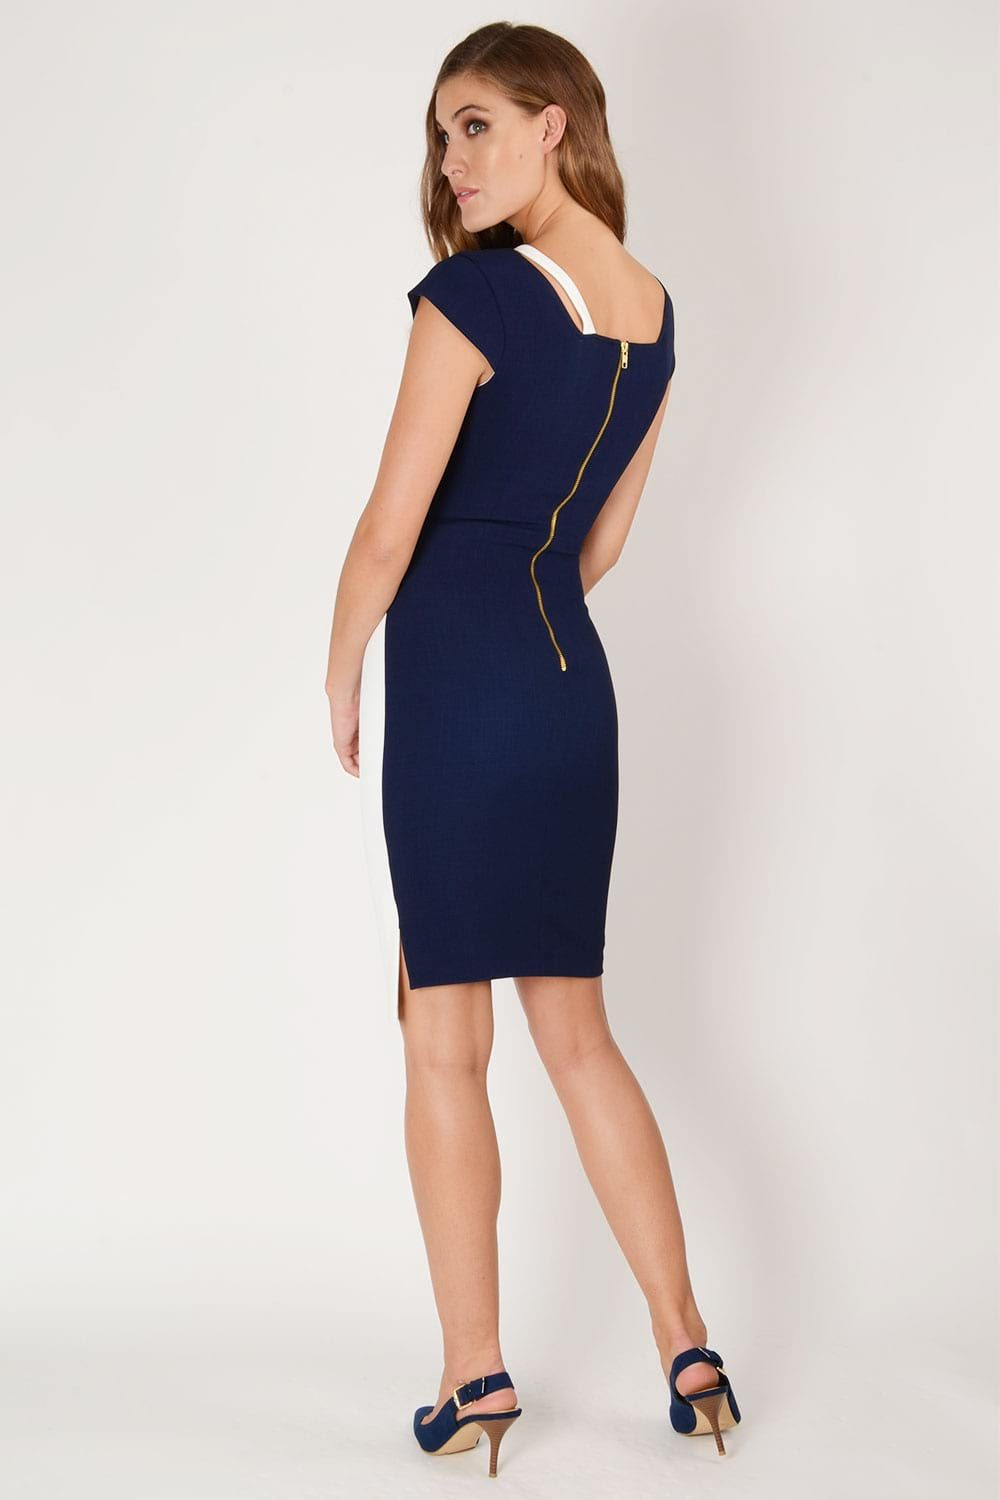 1243Hybrid Fashion 1243 Winona Asymmetric Pencil Dressback